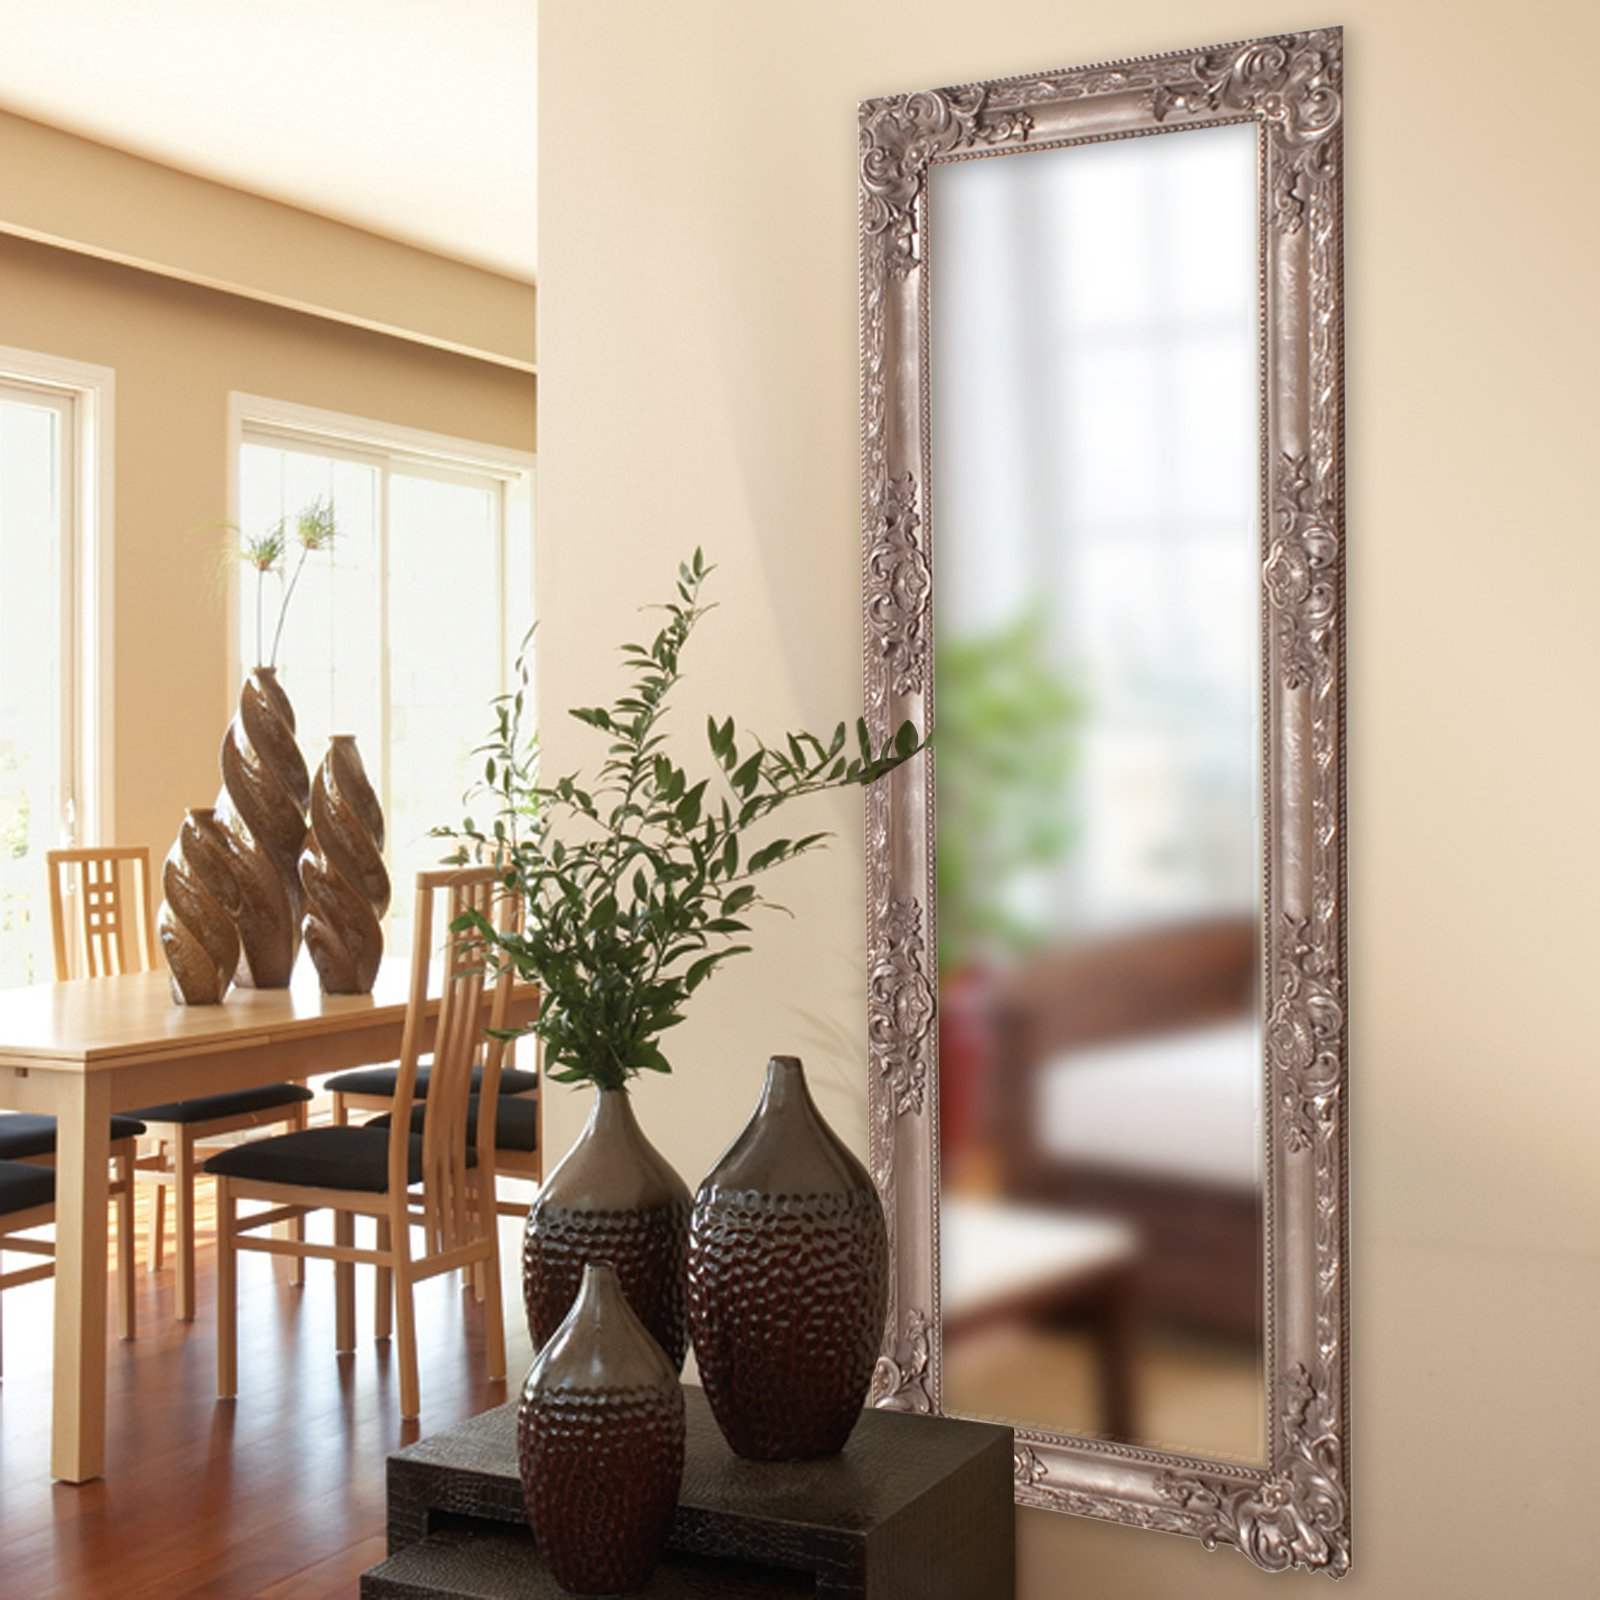 Widely Used Bedroom Wall Mirrors Inside Belham Living Carlos Full Length Wall Mirror – 23w X 62h In (View 20 of 20)